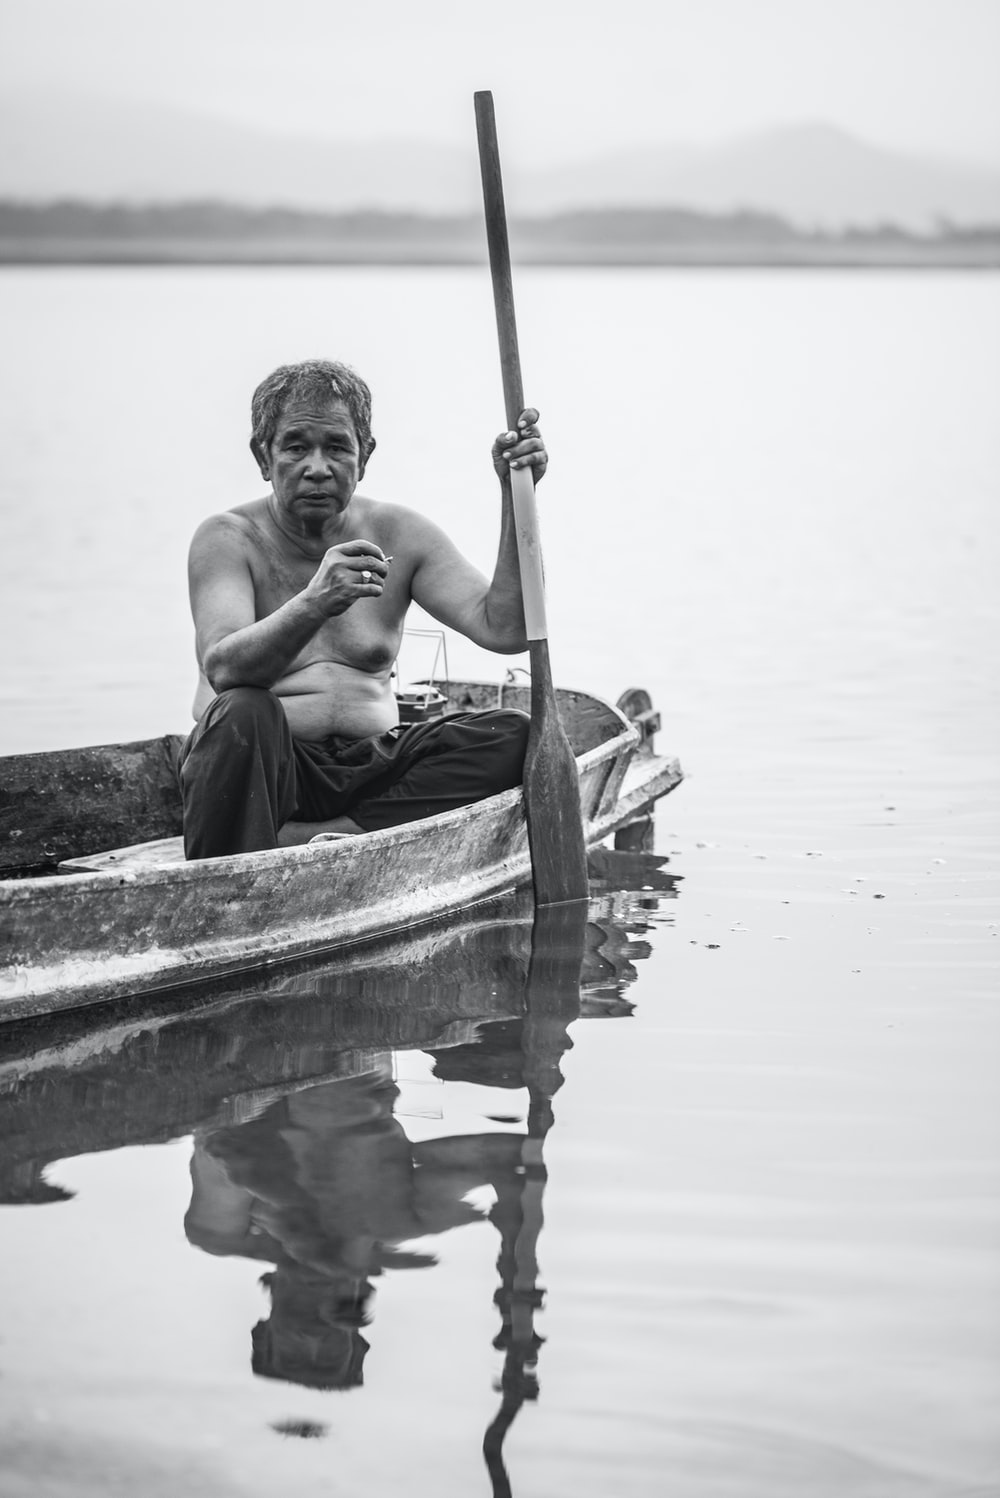 man in boat on water